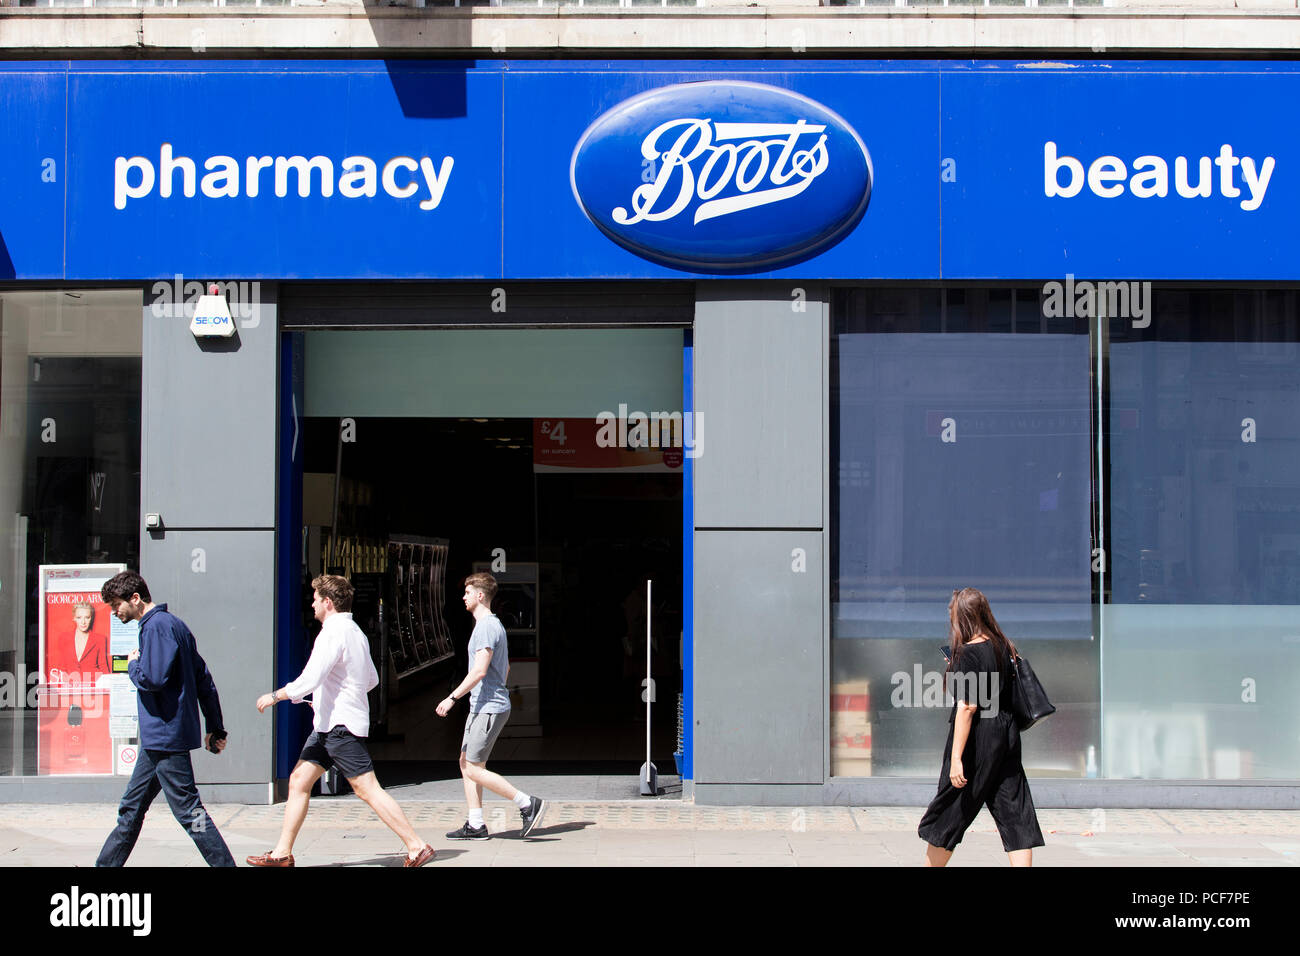 LONDON, UK , JULY 31th 2018 Boots cosmetics and pharmacy